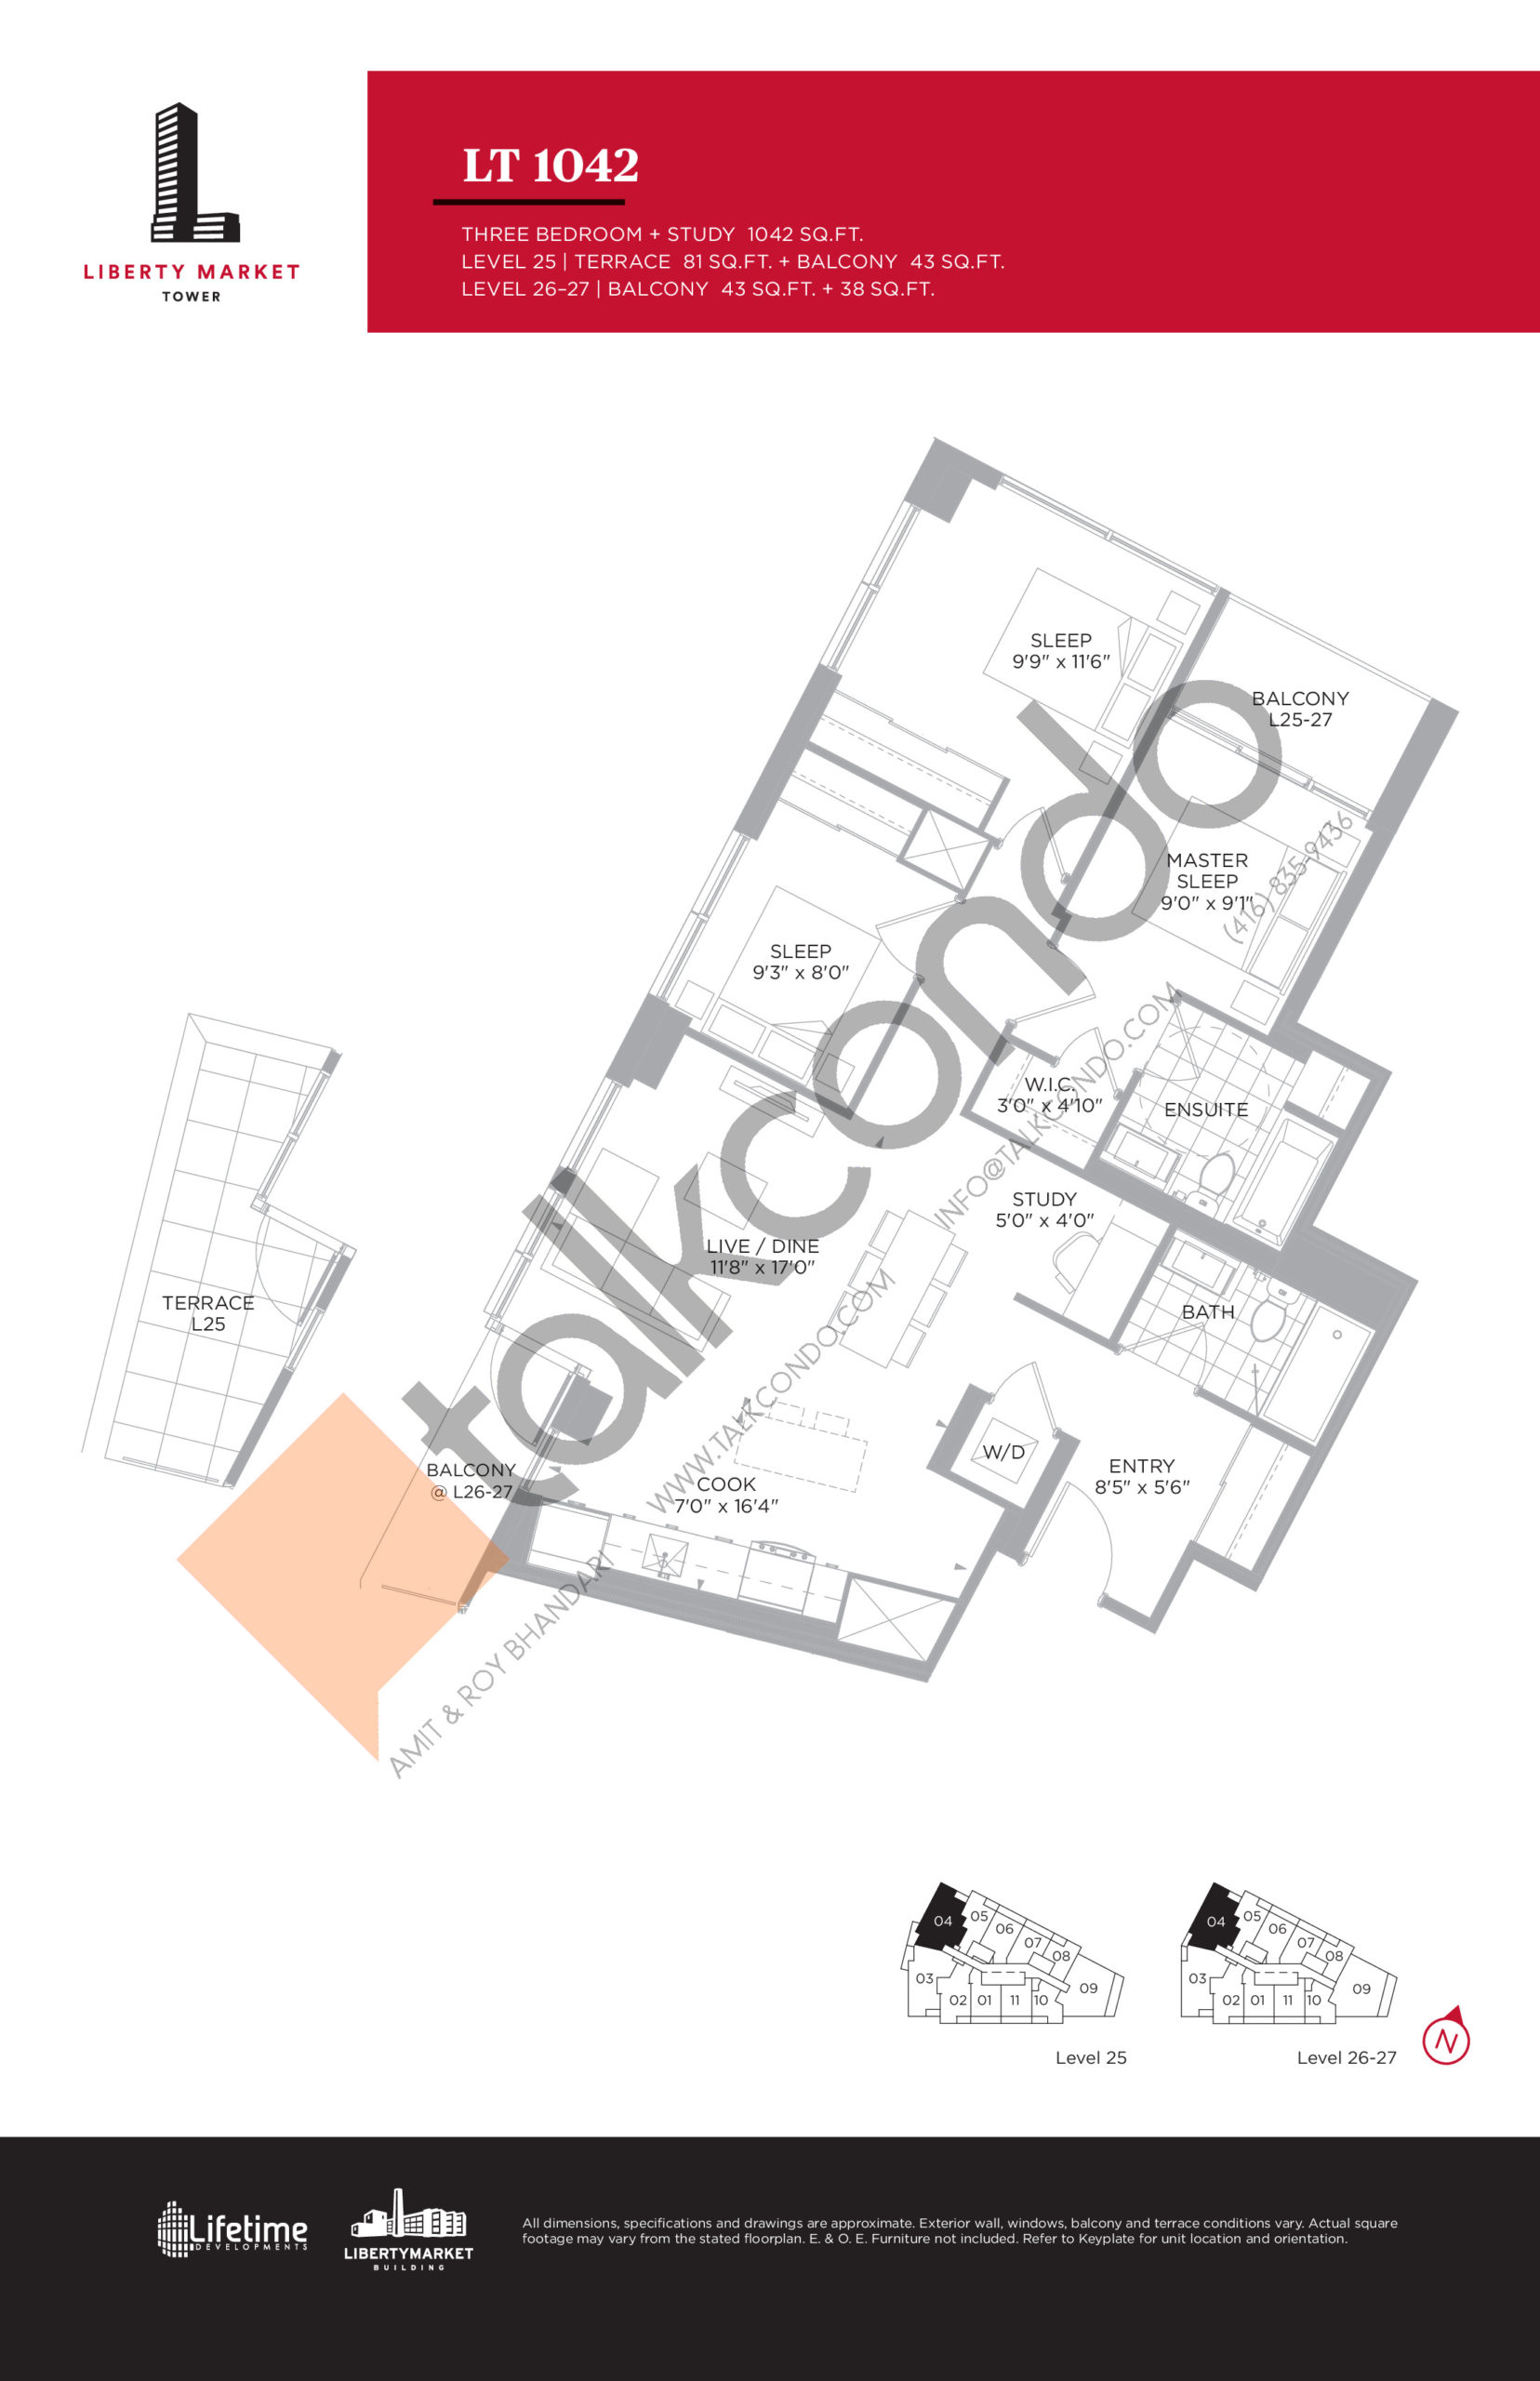 LT 1042 - Tower Collection Floor Plan at Liberty Market Tower Condos - 1042 sq.ft